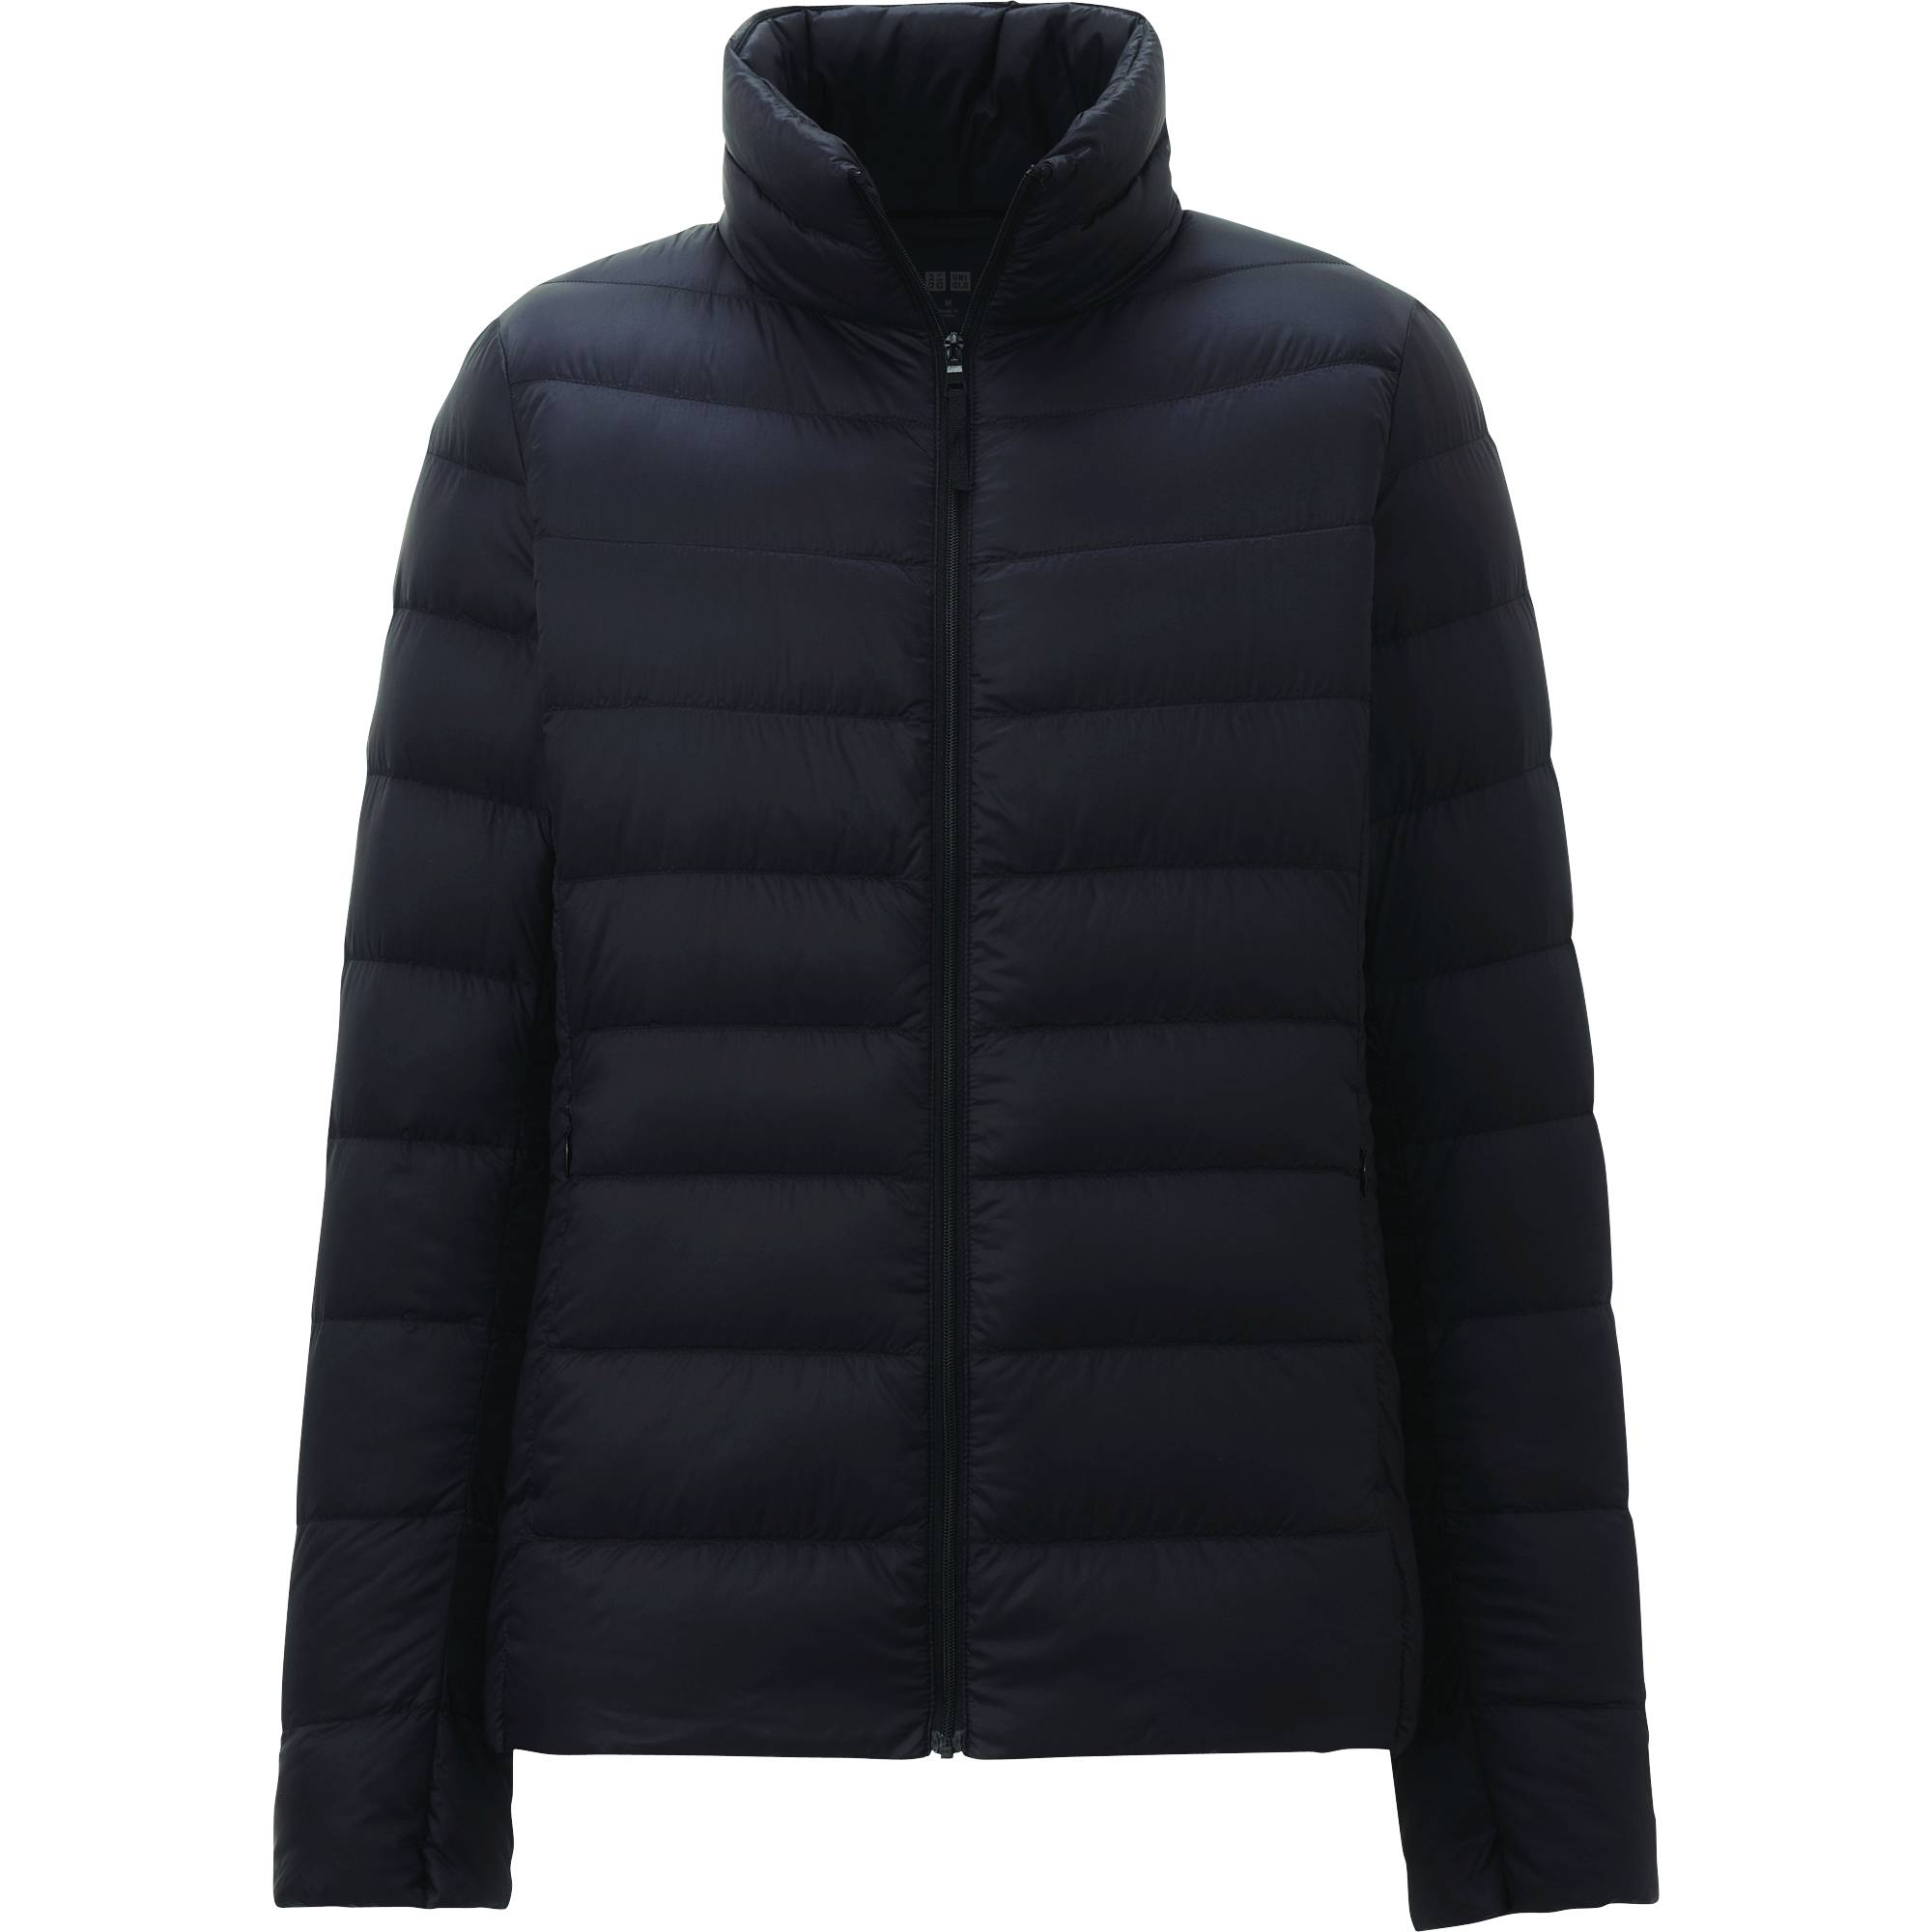 Woolrich jacken berlin